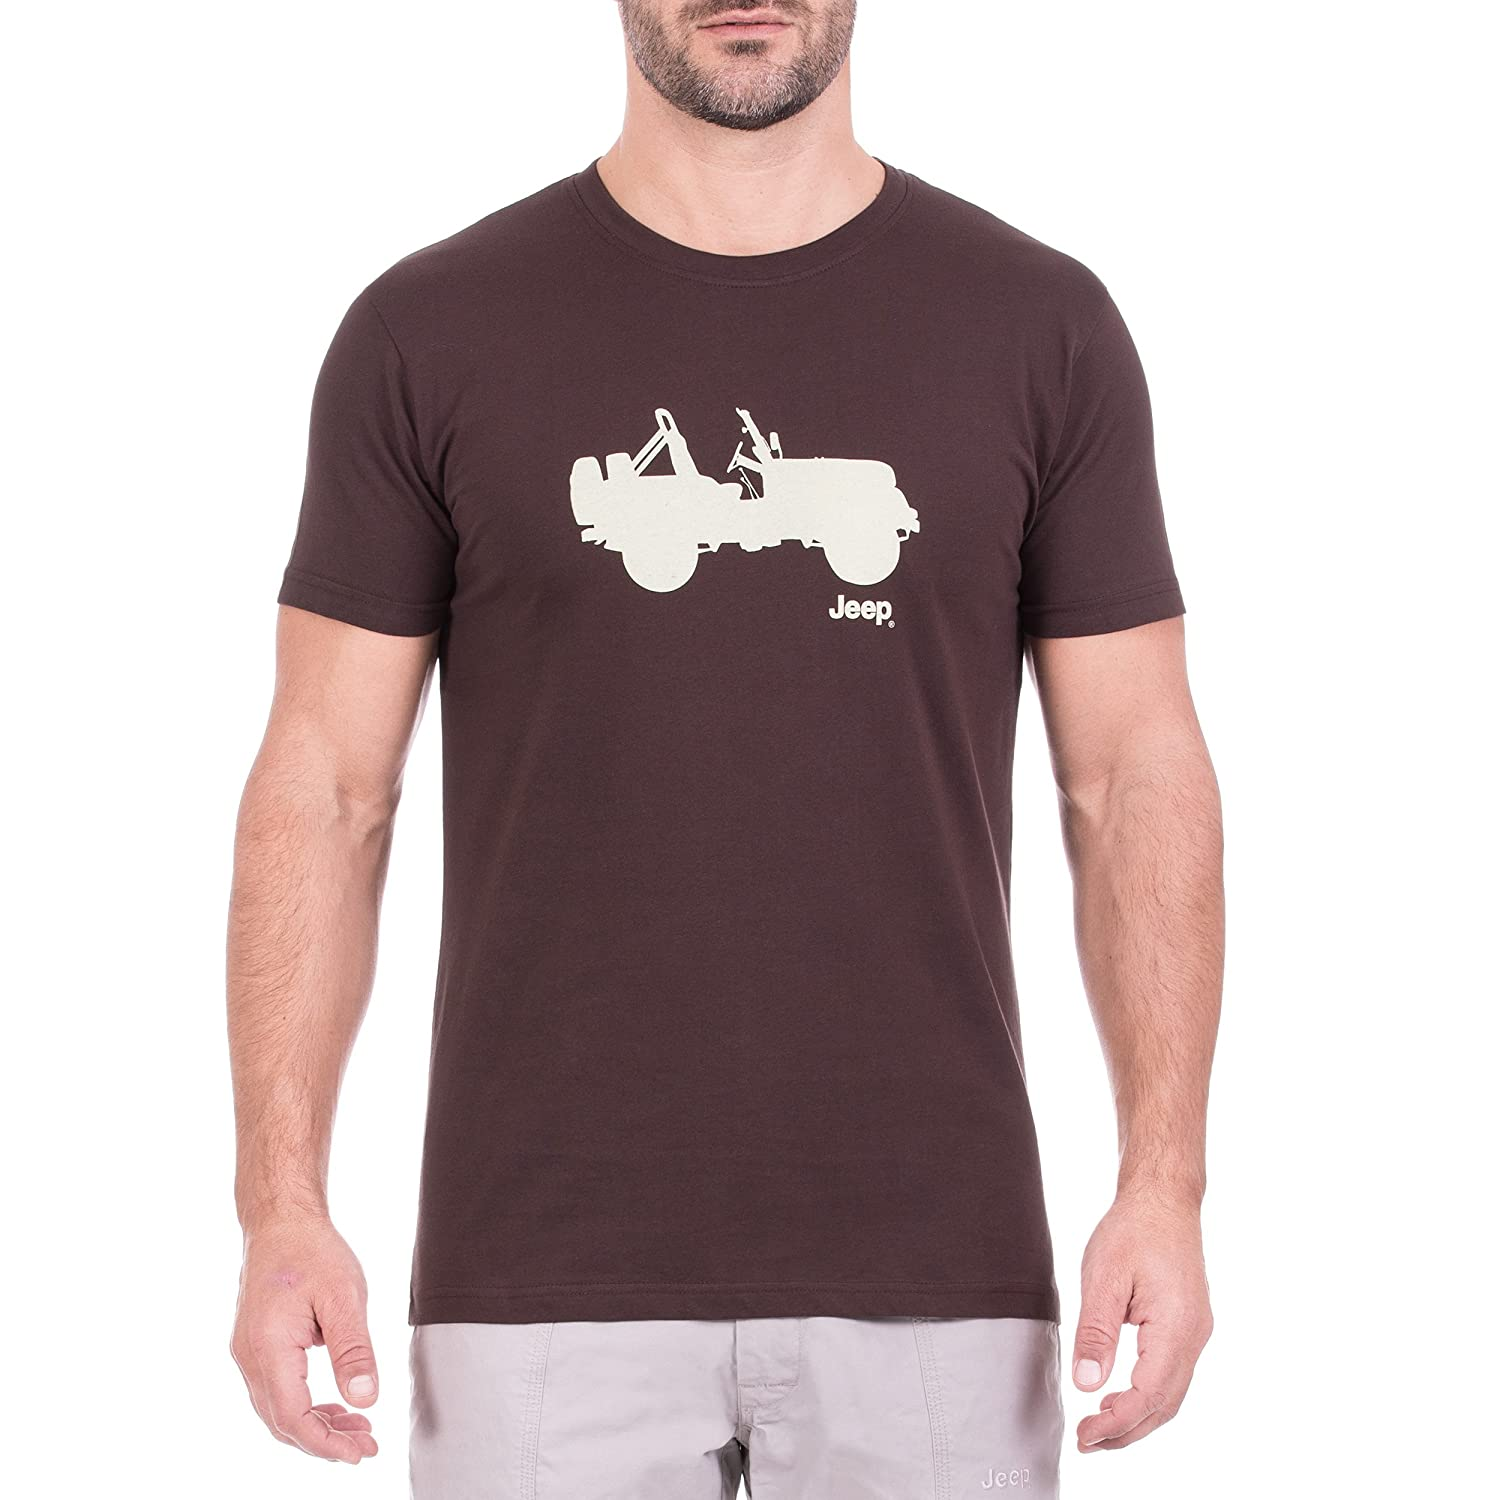 Jeep Men's T-Shirt Side Willys J8s Trerè Innovation S.r.l. Unipersonale de sporting goods TRMHD